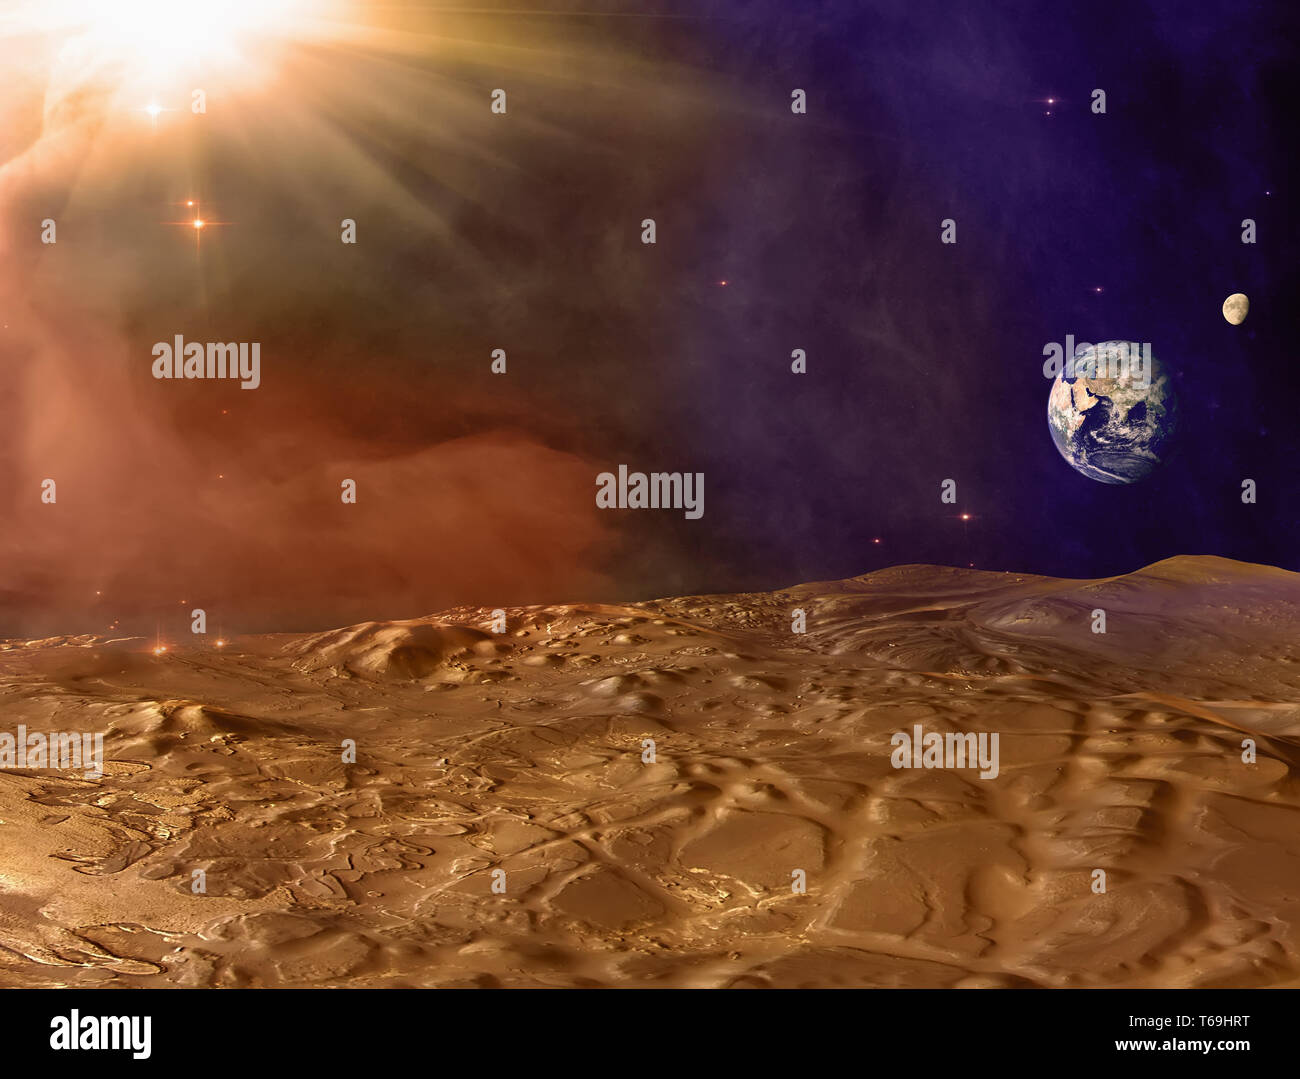 Mars planet landscape. Martian surface and dust in the atmosphere with Earth and Moon on horizon. Dust storm on Mars. Elements of this image furnished Stock Photo